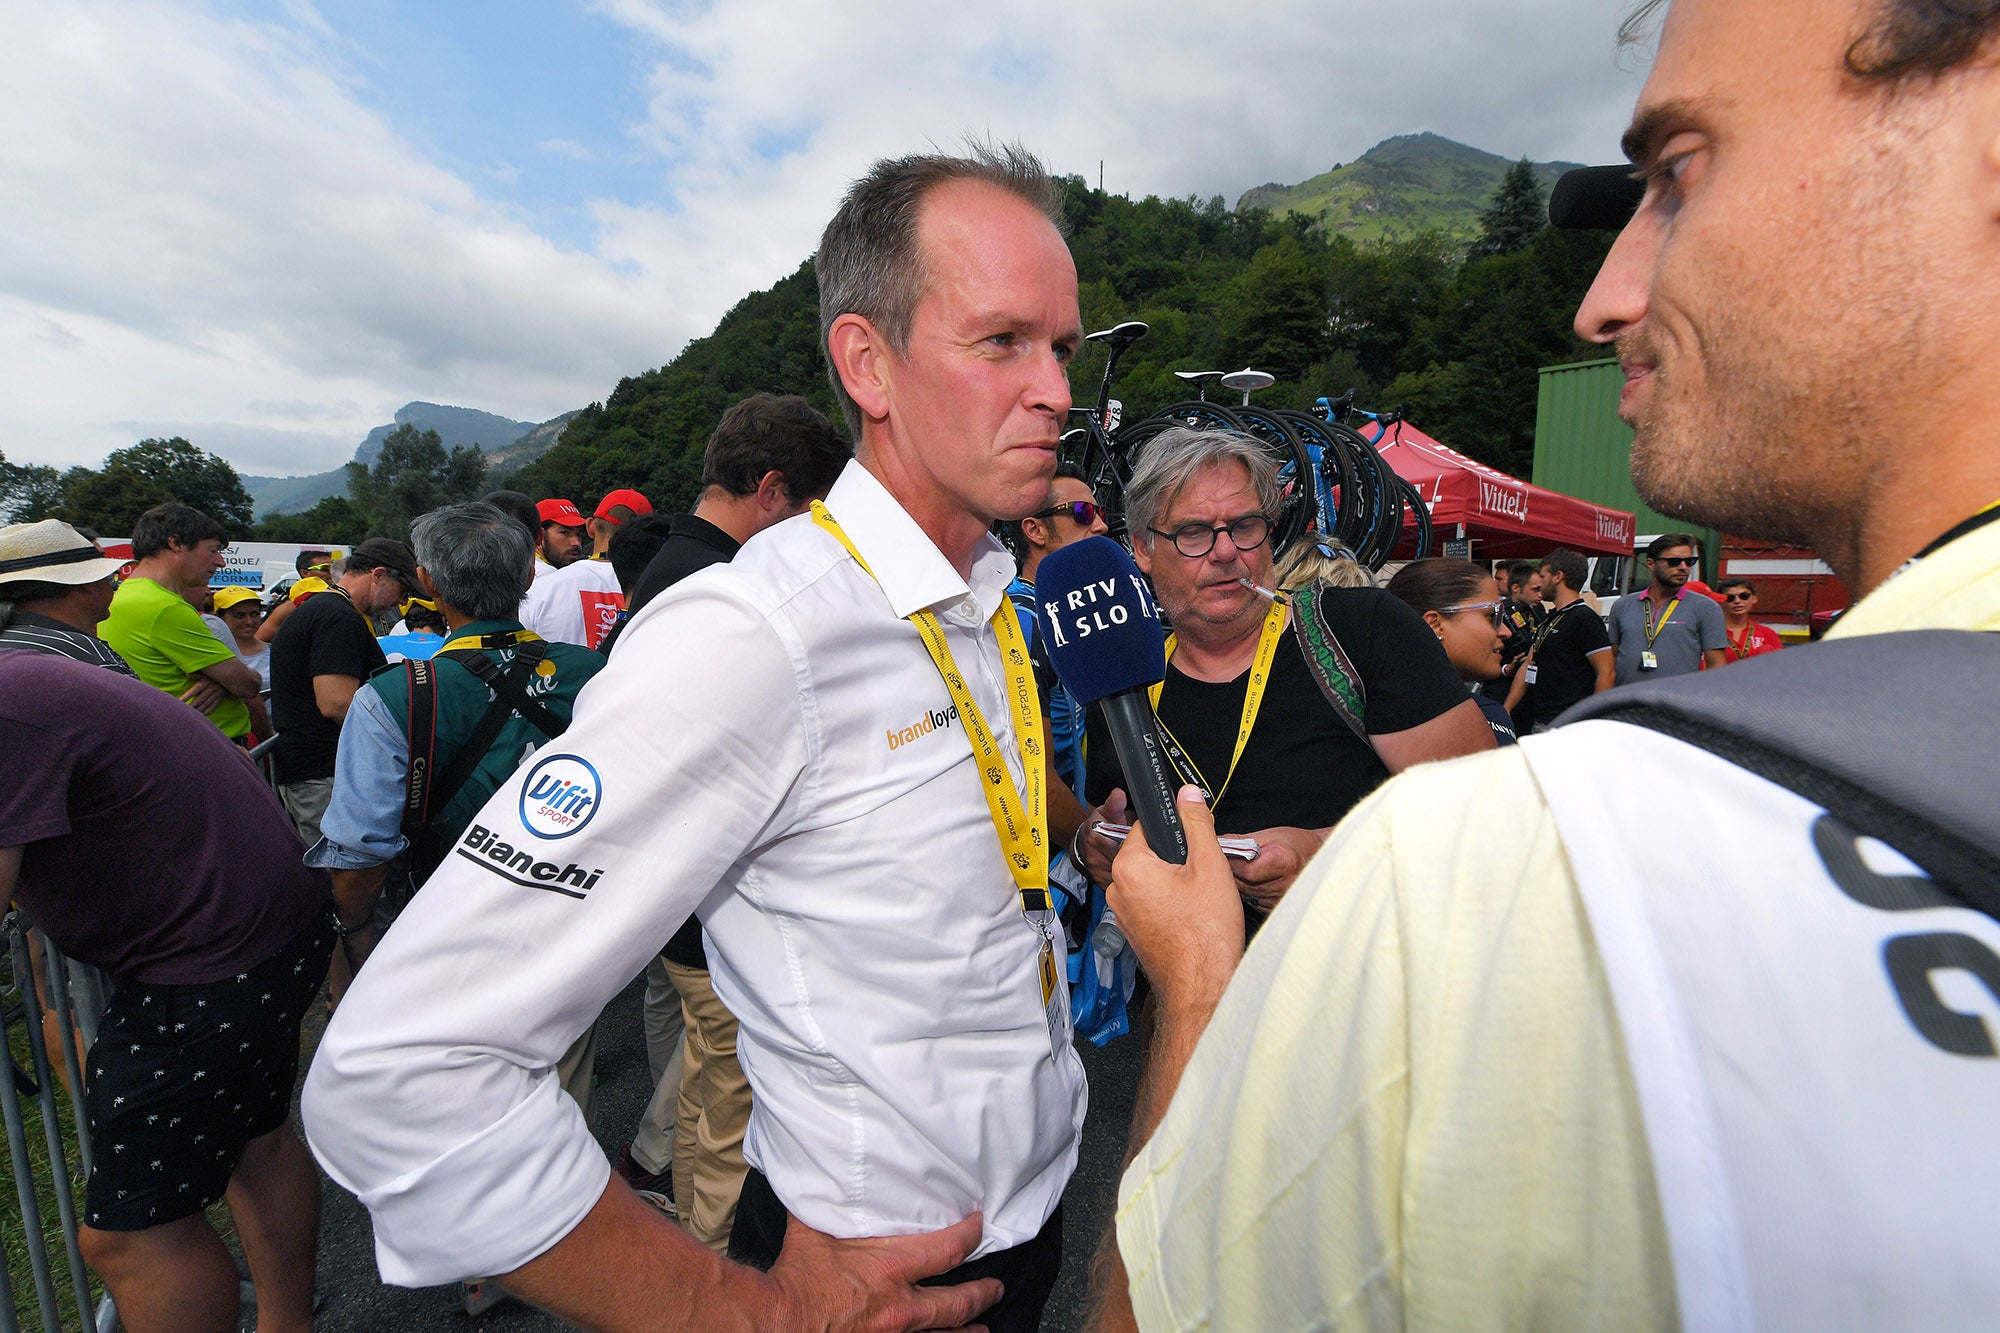 Teams balk at UCI's proposed Tour de France qualifying rules